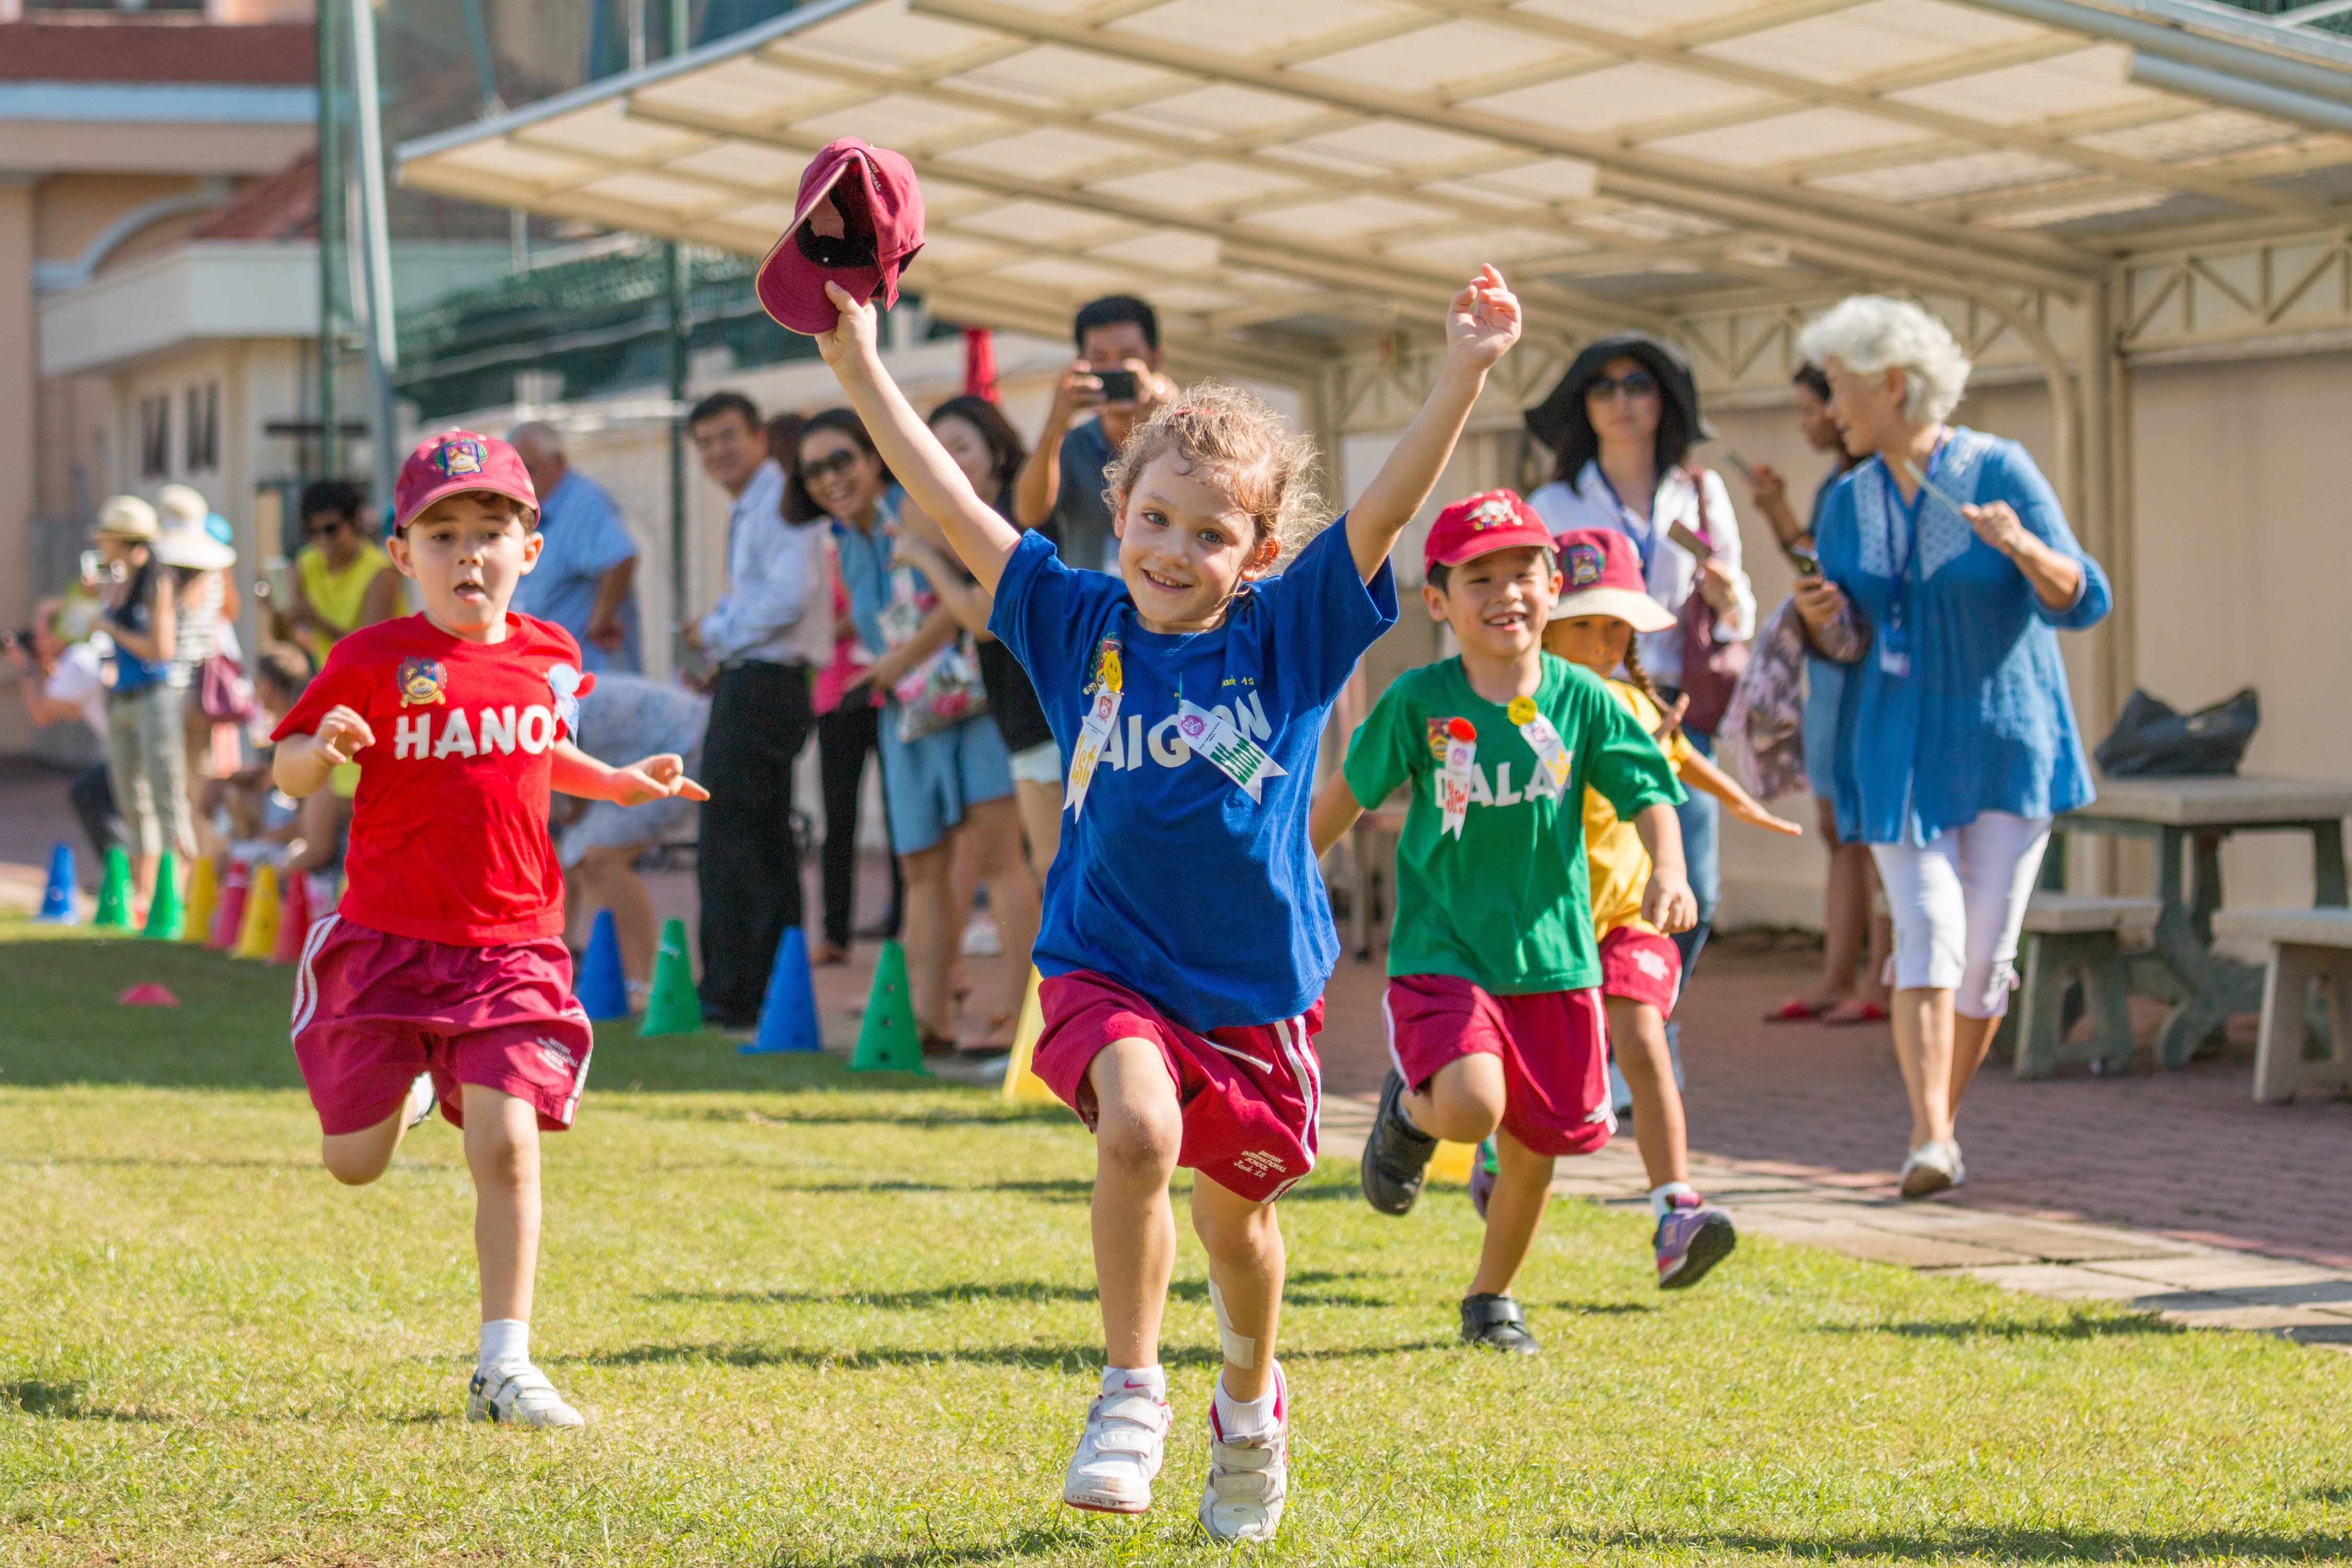 Sports Days at An Phu Primary Campus